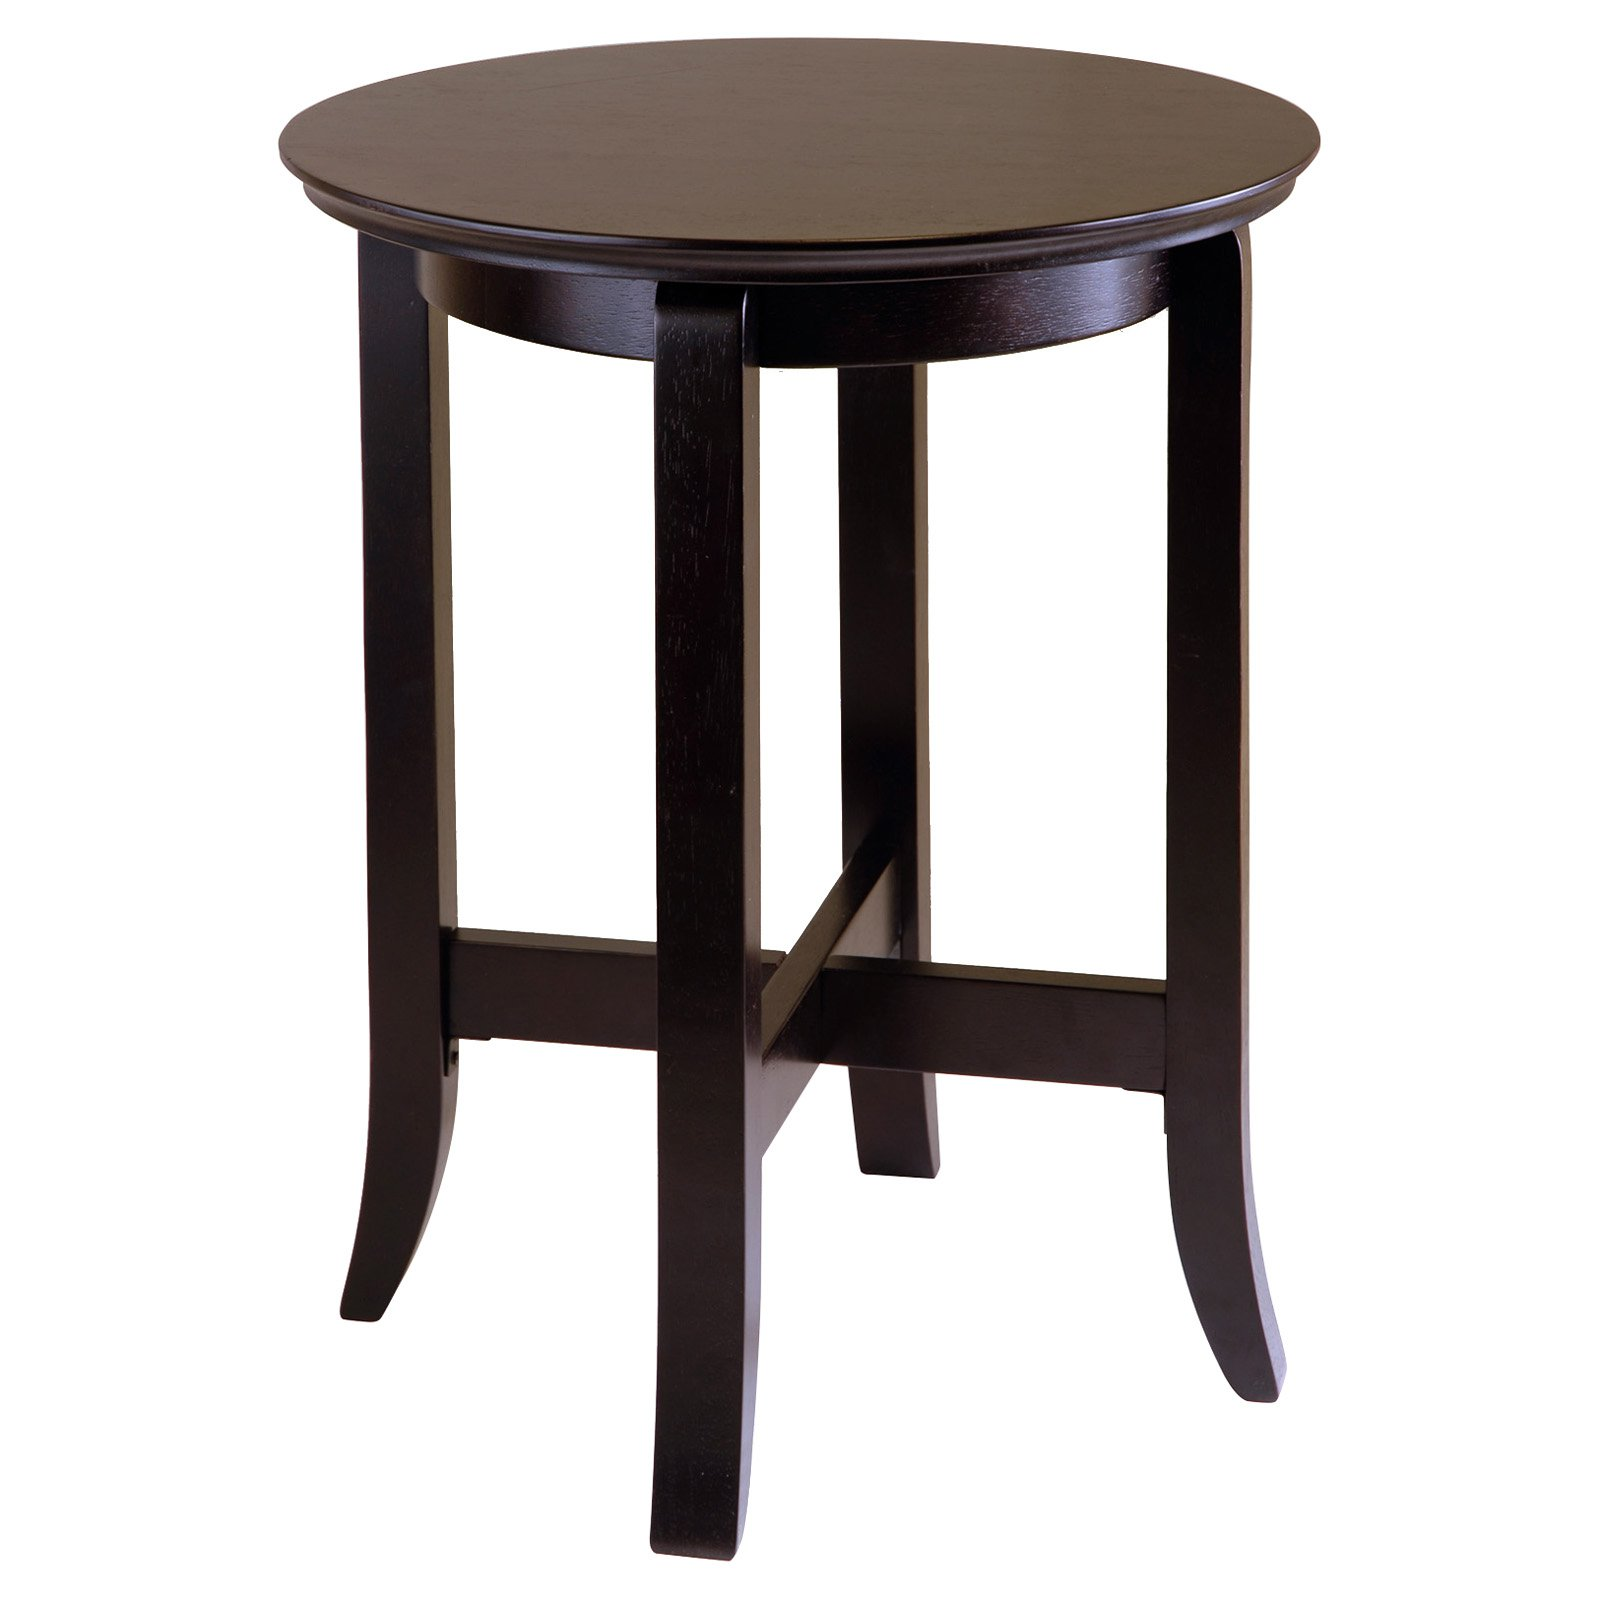 Winsome Wood Toby Round Accent Table, Espresso Finish by Winsome Trading Inc